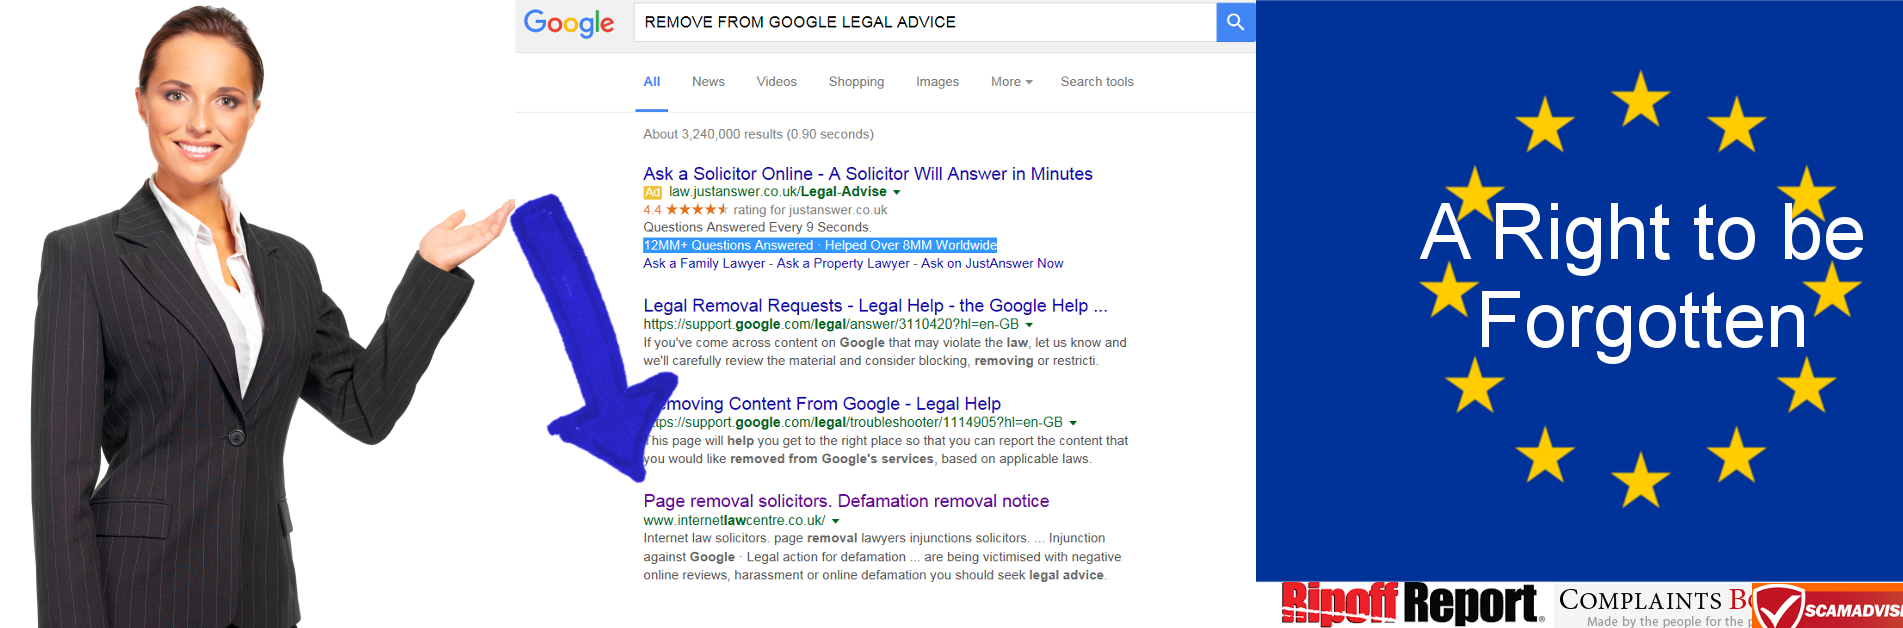 remove_google_legal_advice.png